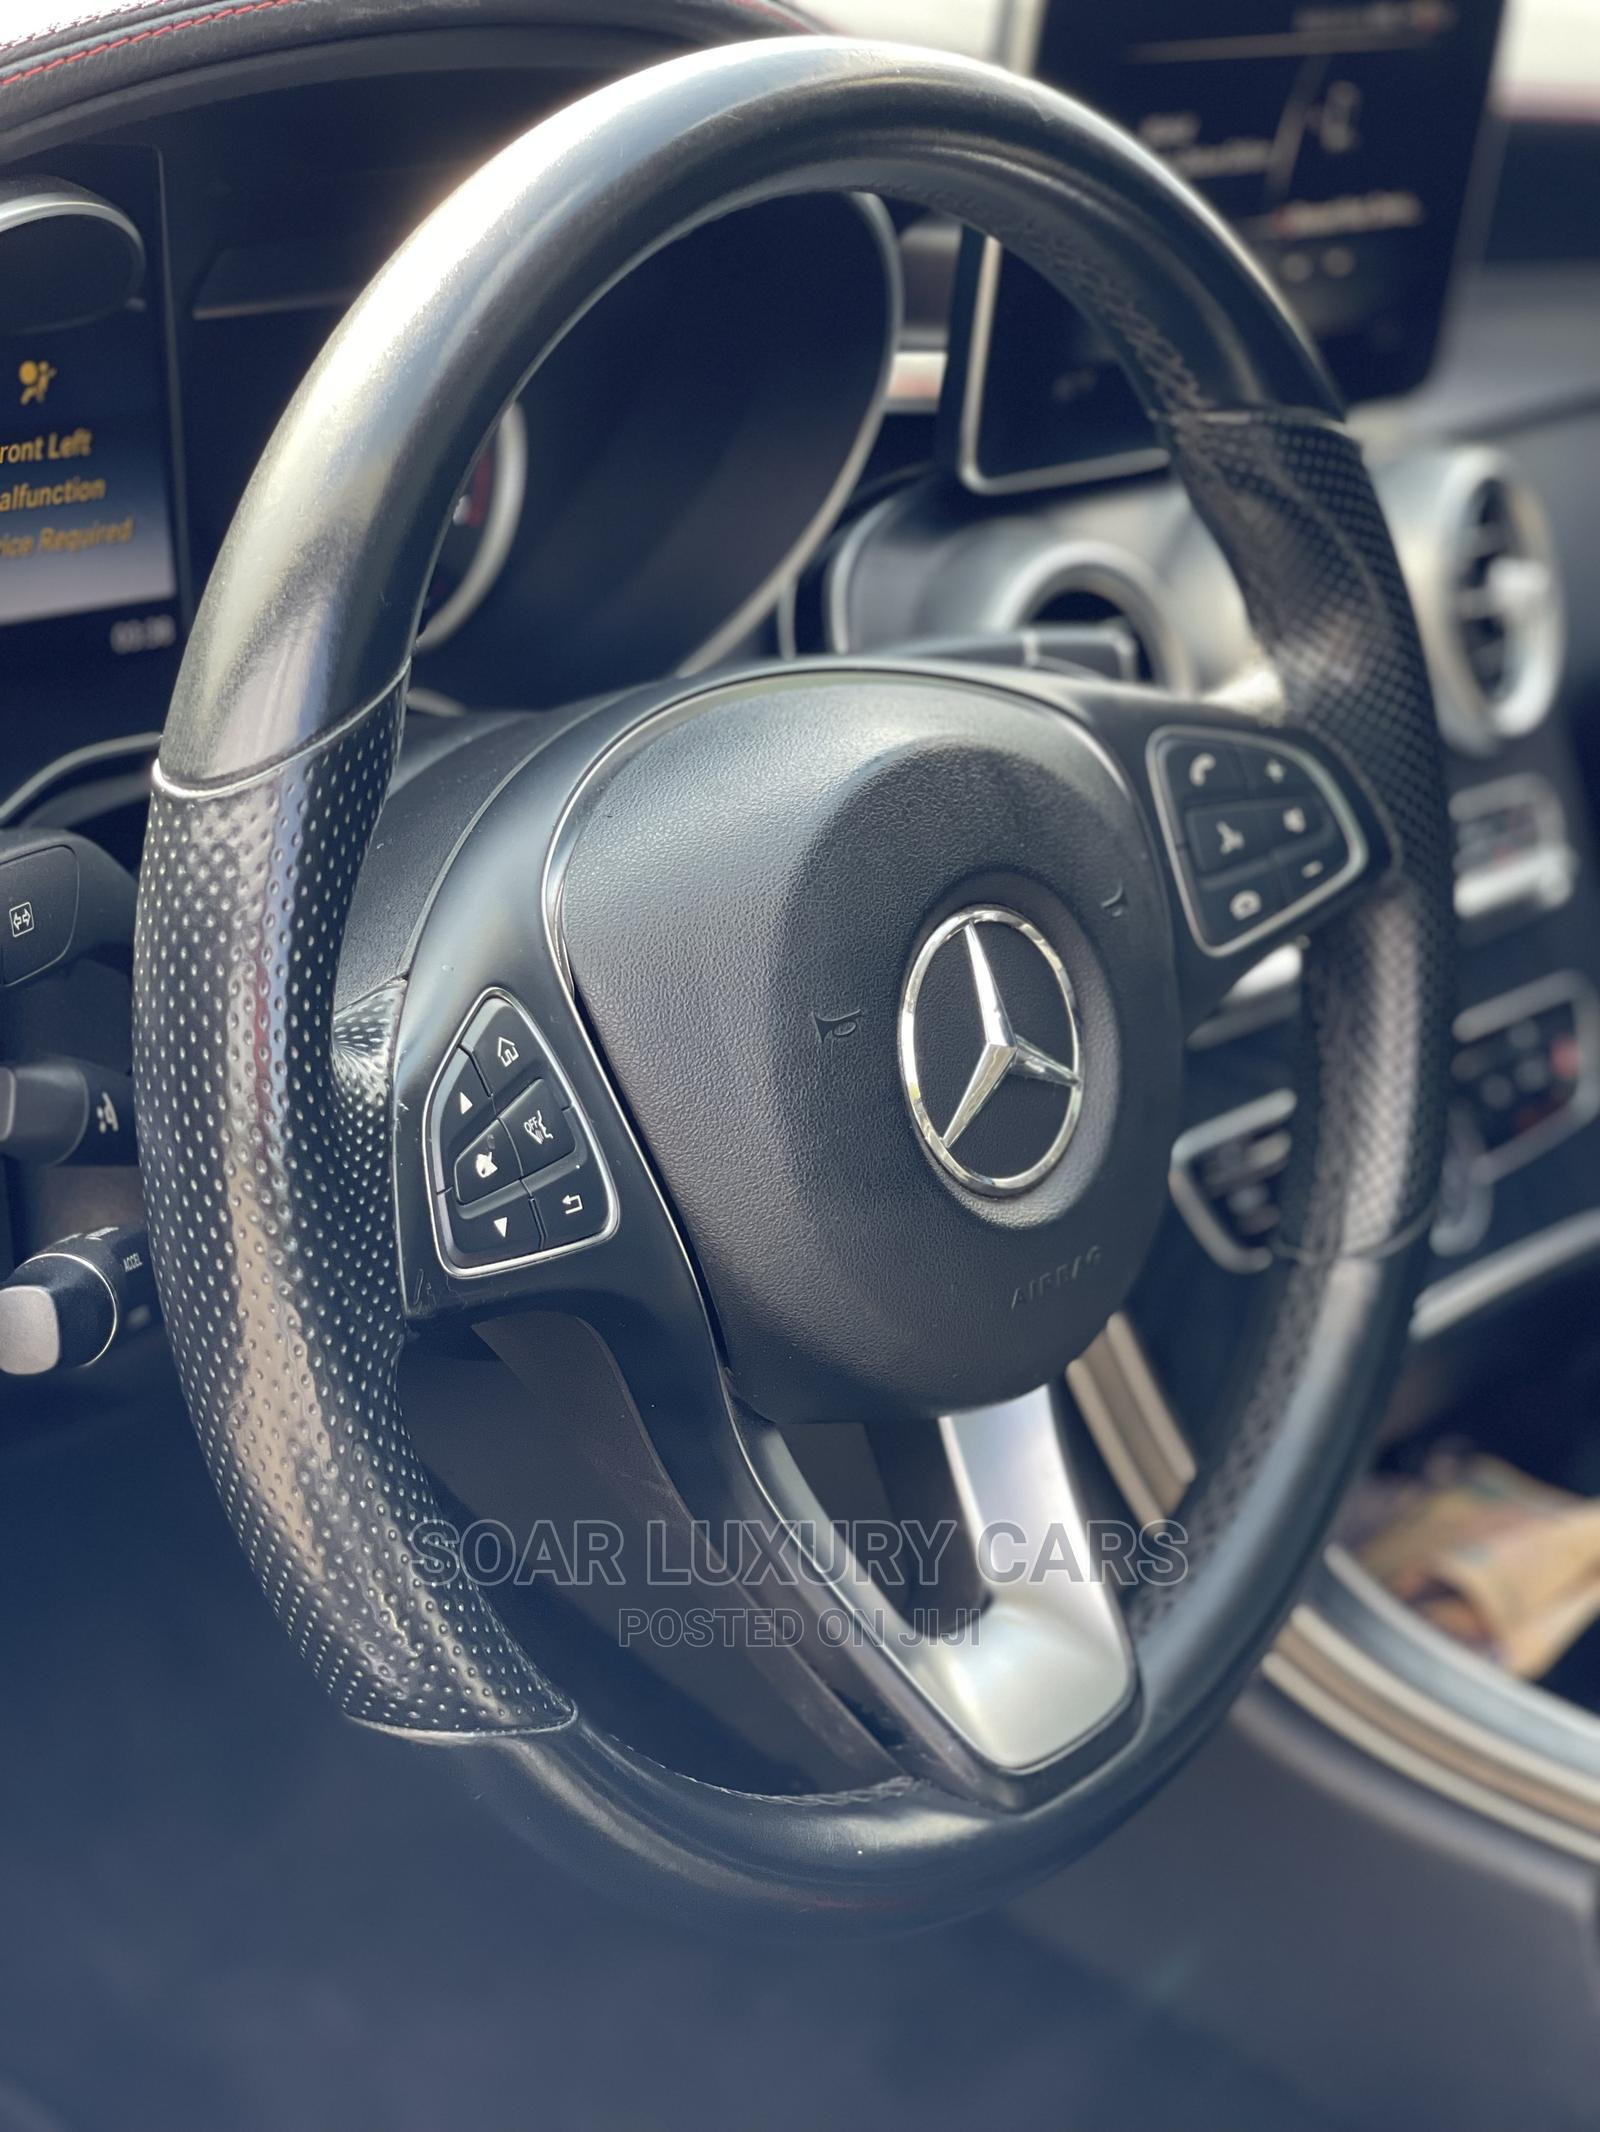 Mercedes-Benz C300 2016 Black   Cars for sale in Central Business District, Abuja (FCT) State, Nigeria